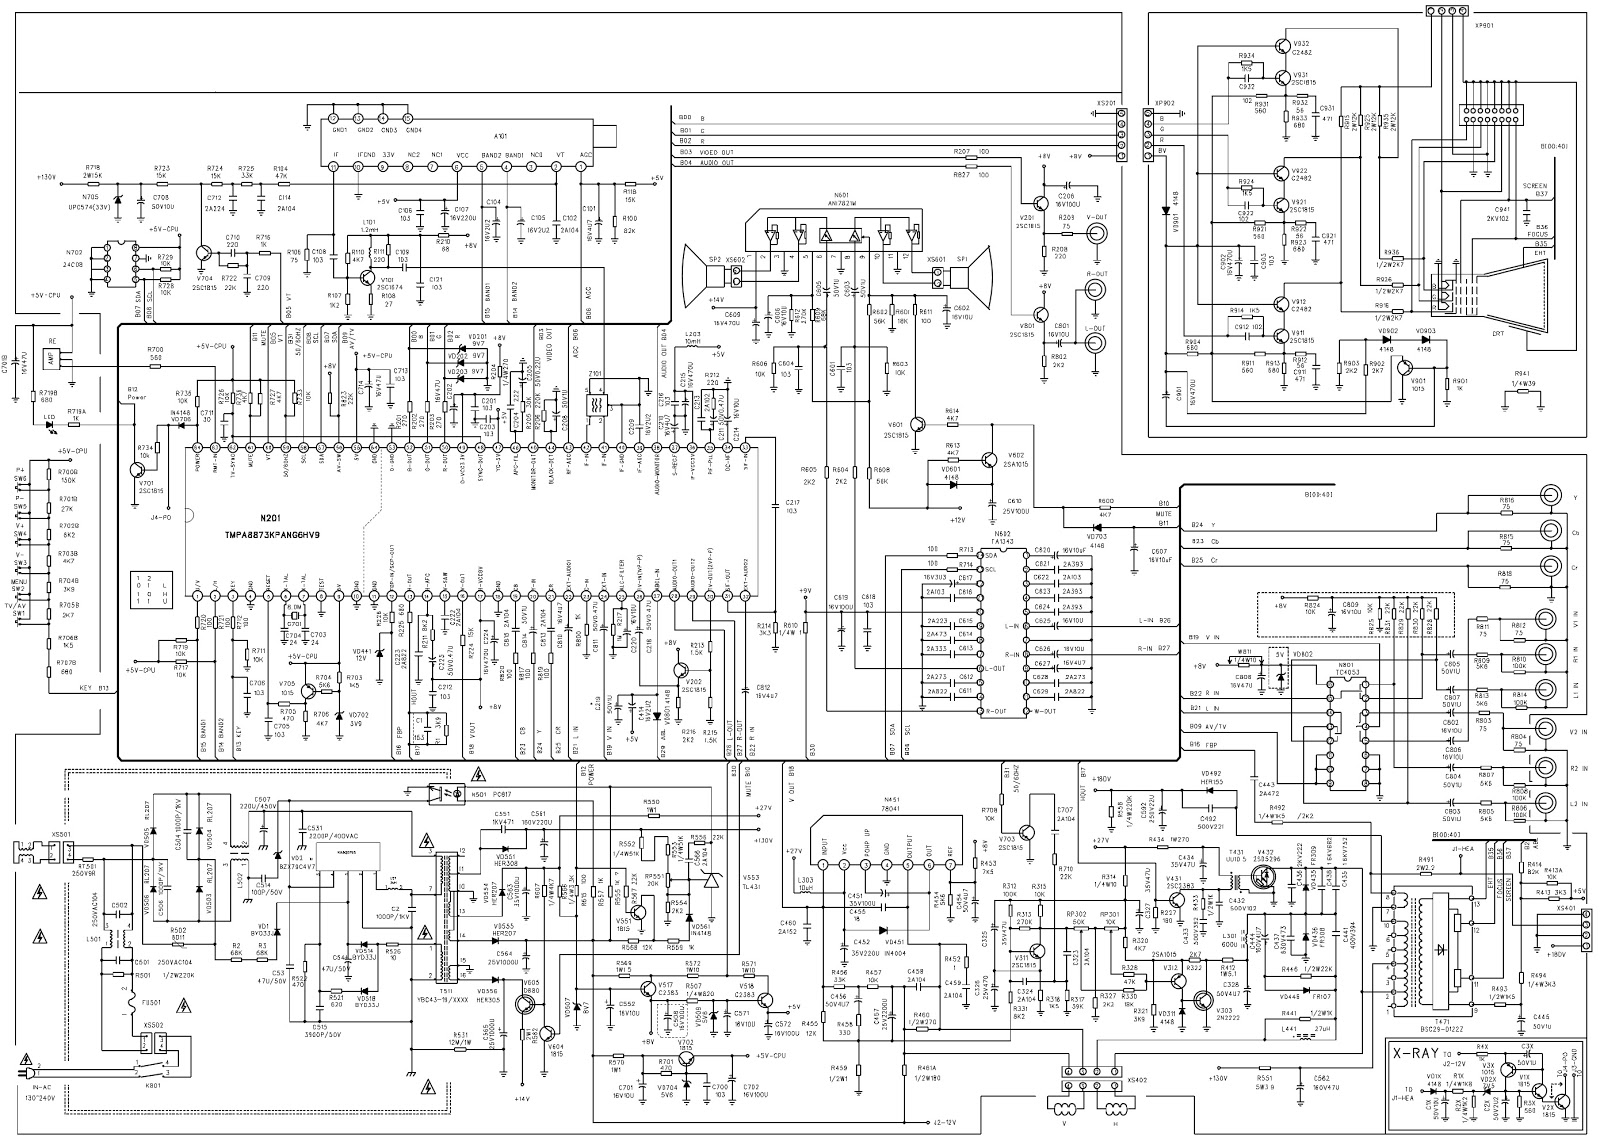 medium resolution of colour tv circuit diagram tmpa8873kpang6hv9 syscon chroma ic palntsc crt tv circuit diagram and pwb schematic diagrams